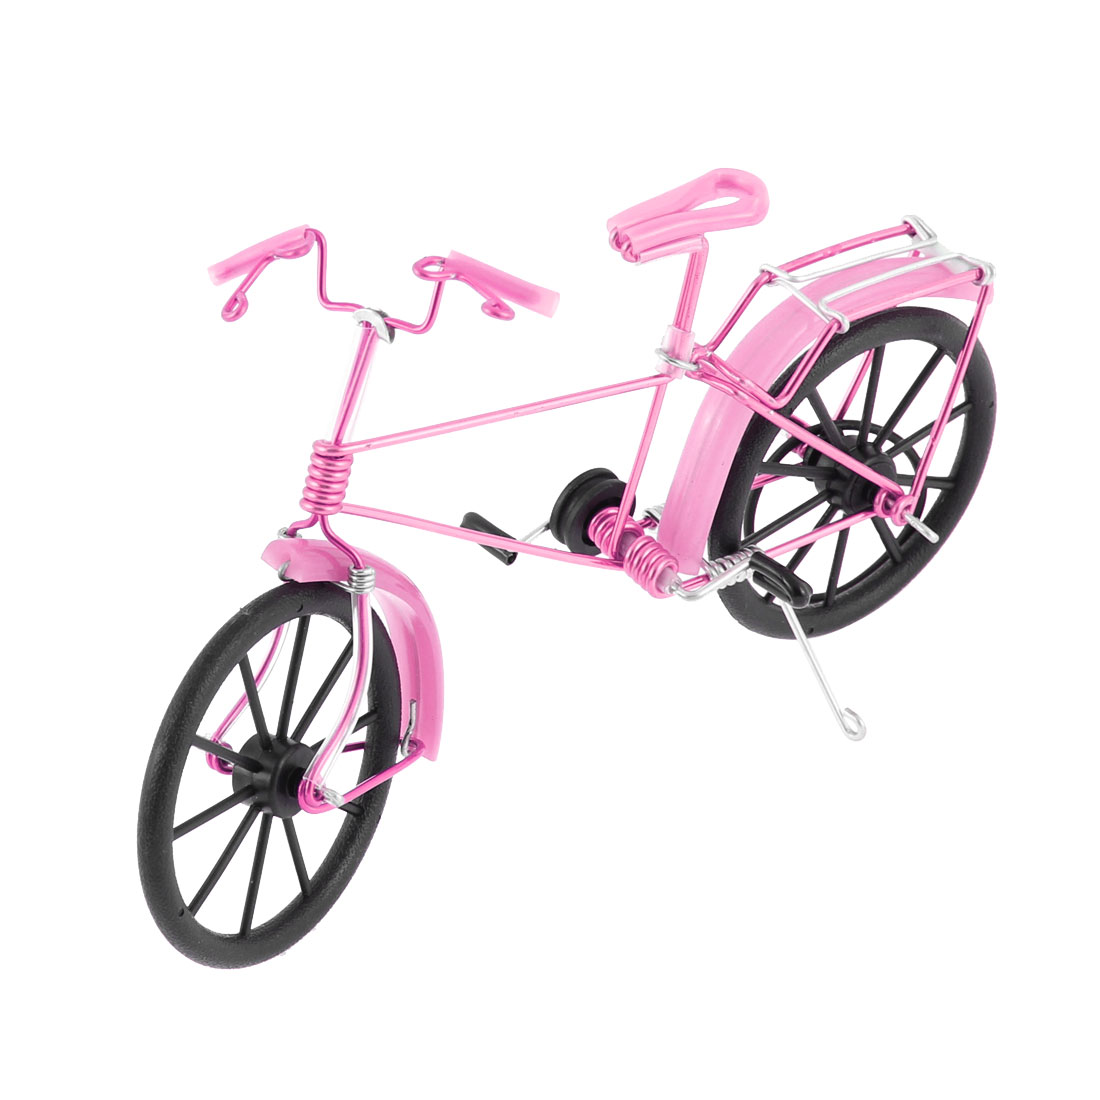 Handmade Wire Bicycle Cycling Bike Model Decoration Pink